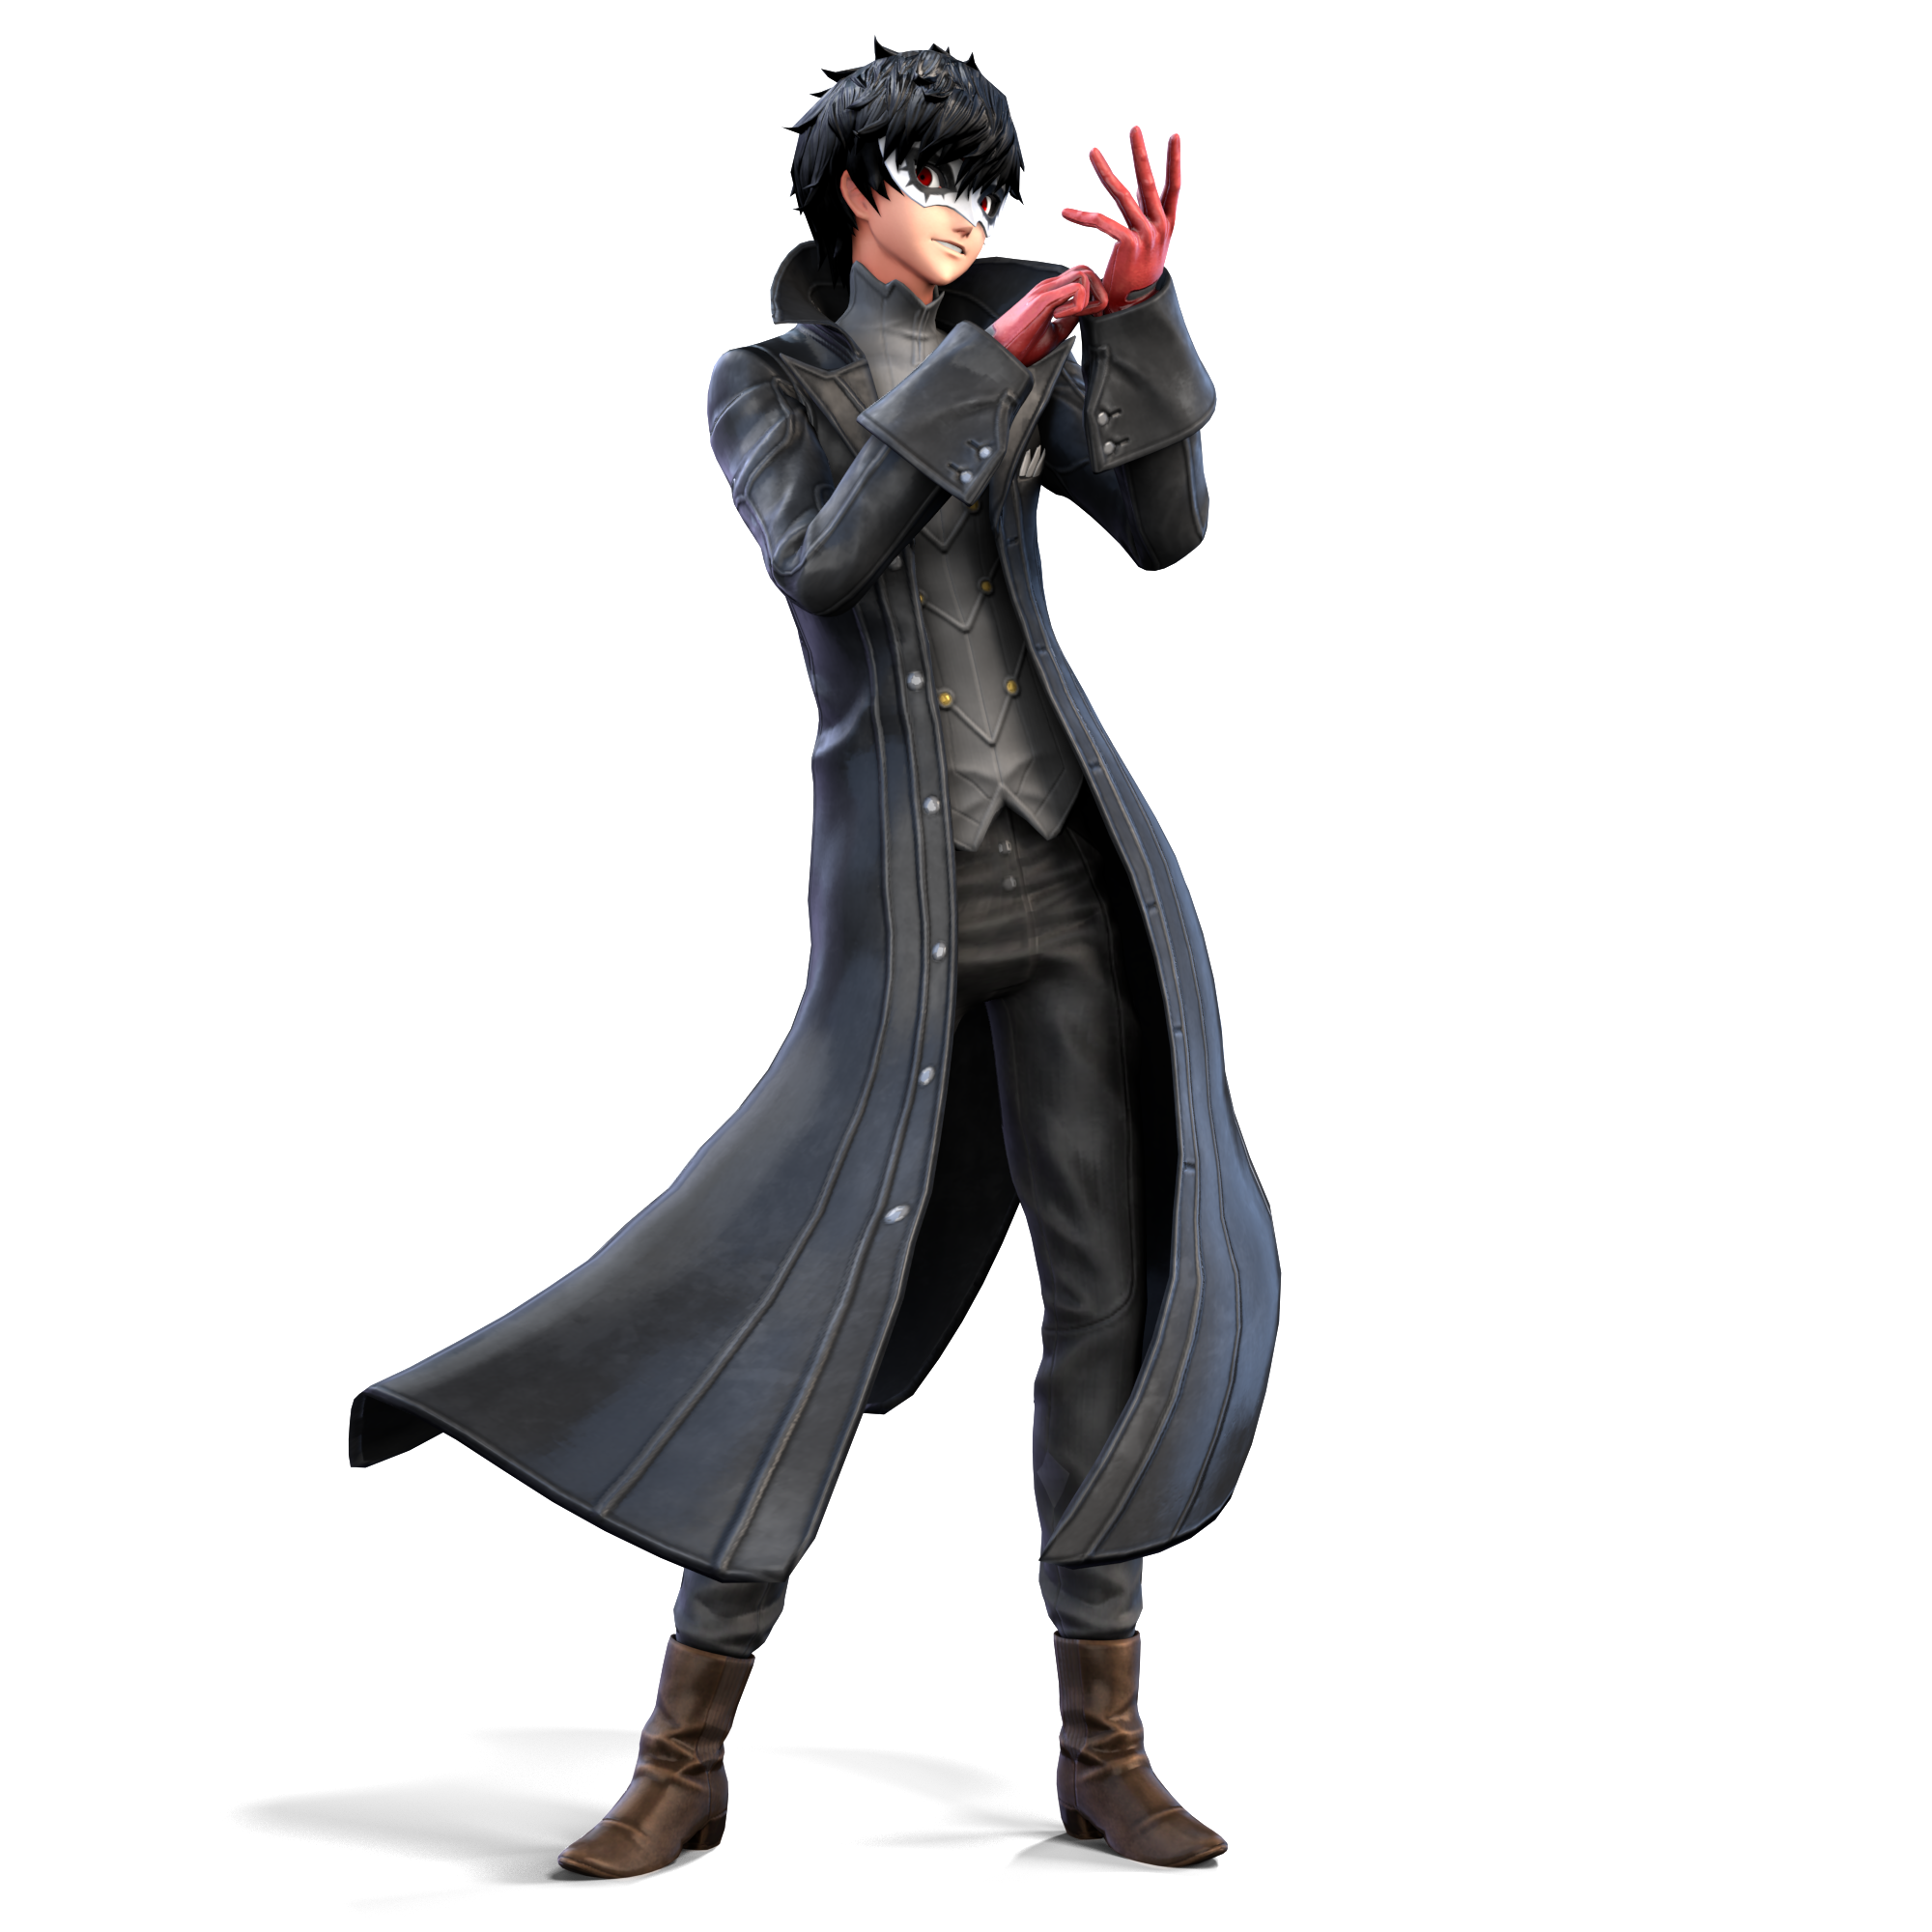 Joker All Out Attack Pose By Unbecomingname On Deviantart